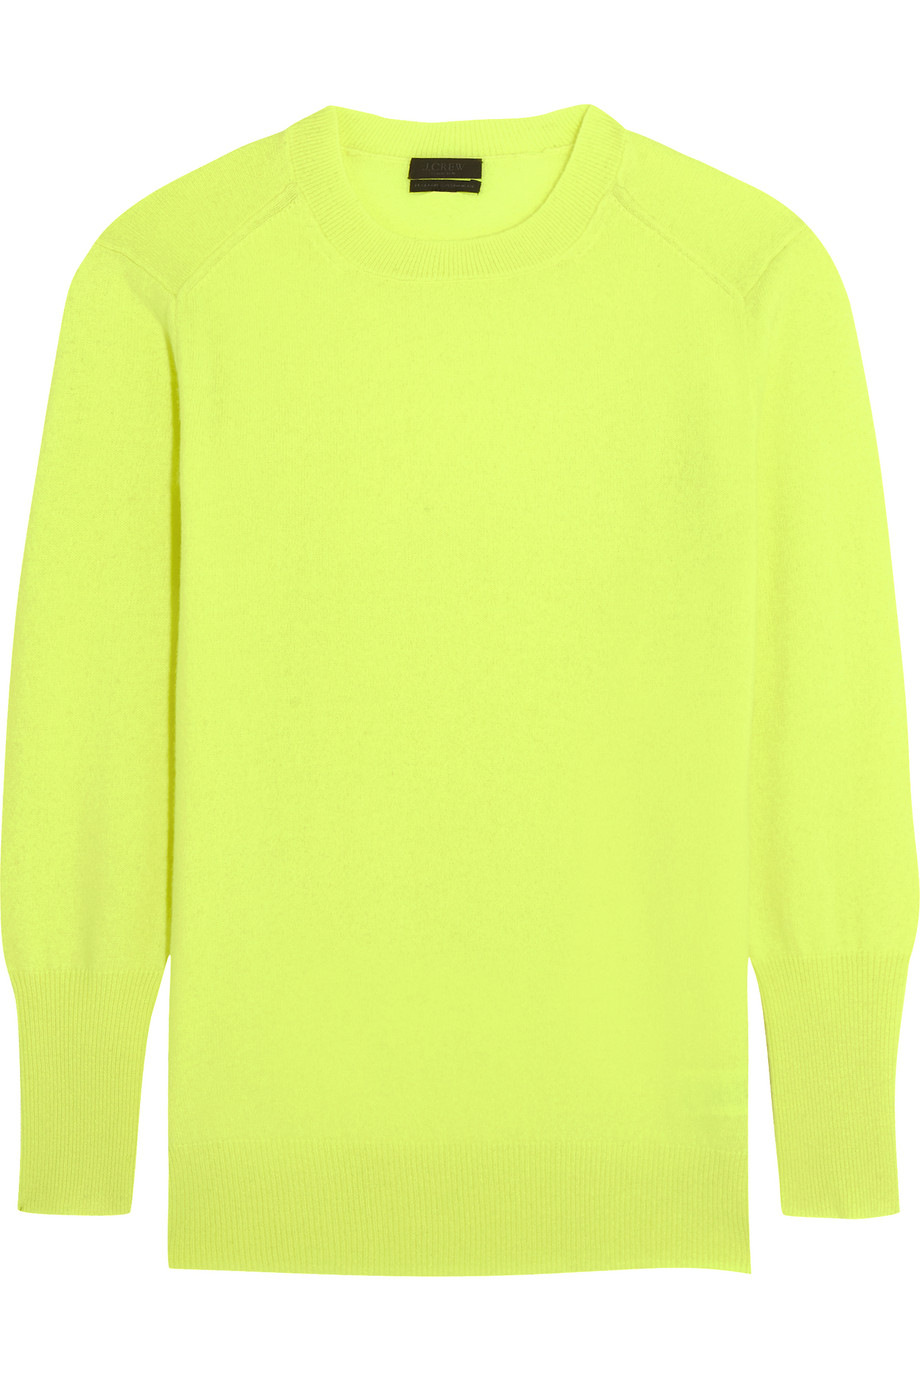 J.Crew Cashmere Sweater, Bright Yellow, Women's